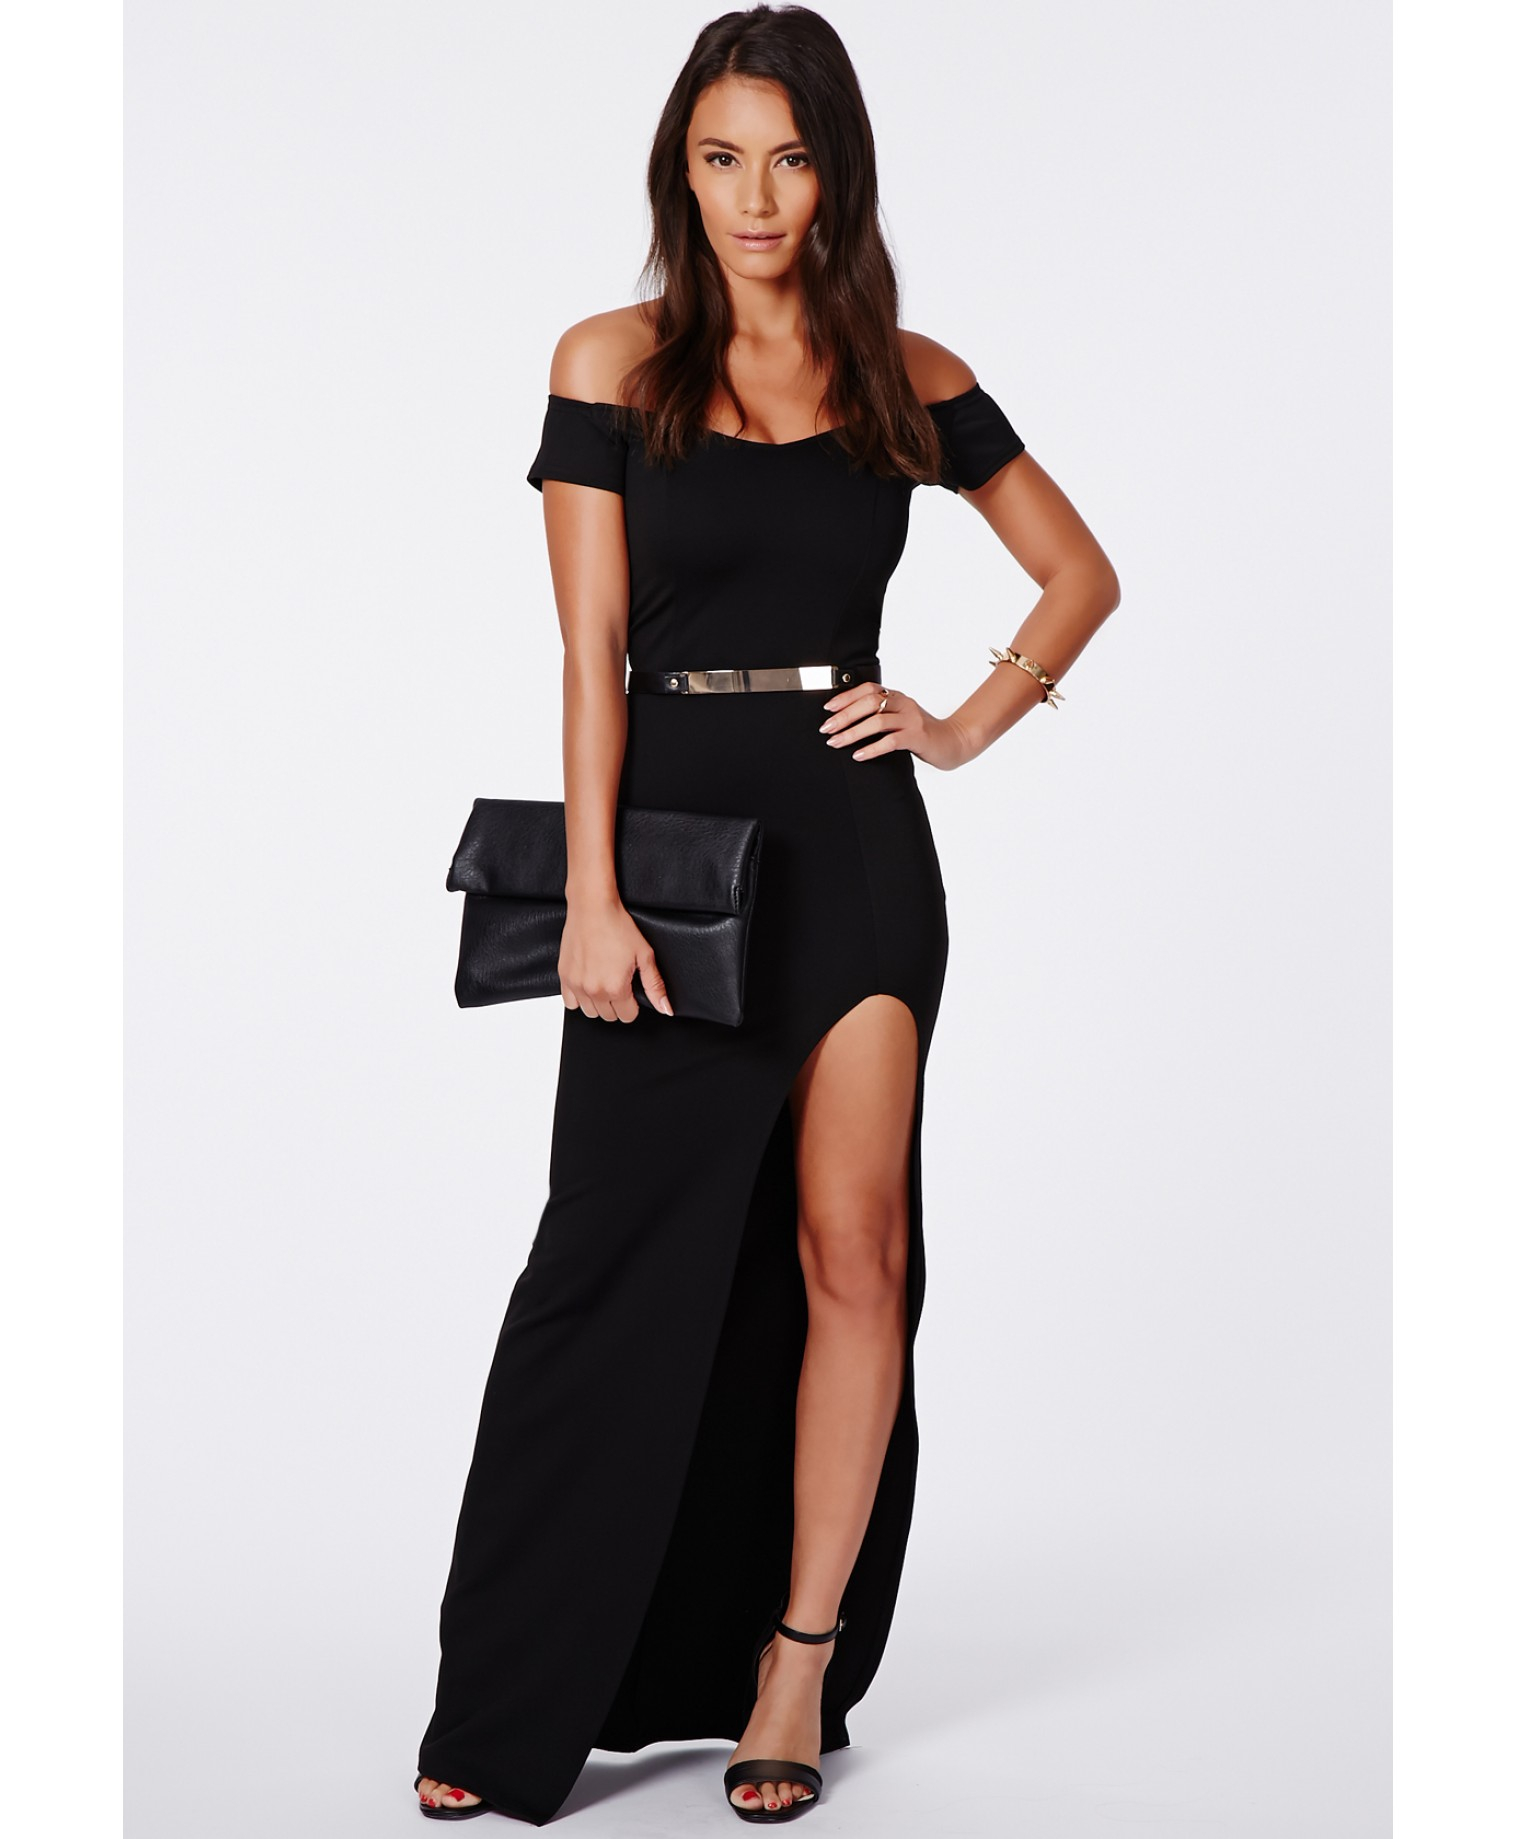 Black long sleeve maxi dress with thigh split skirt